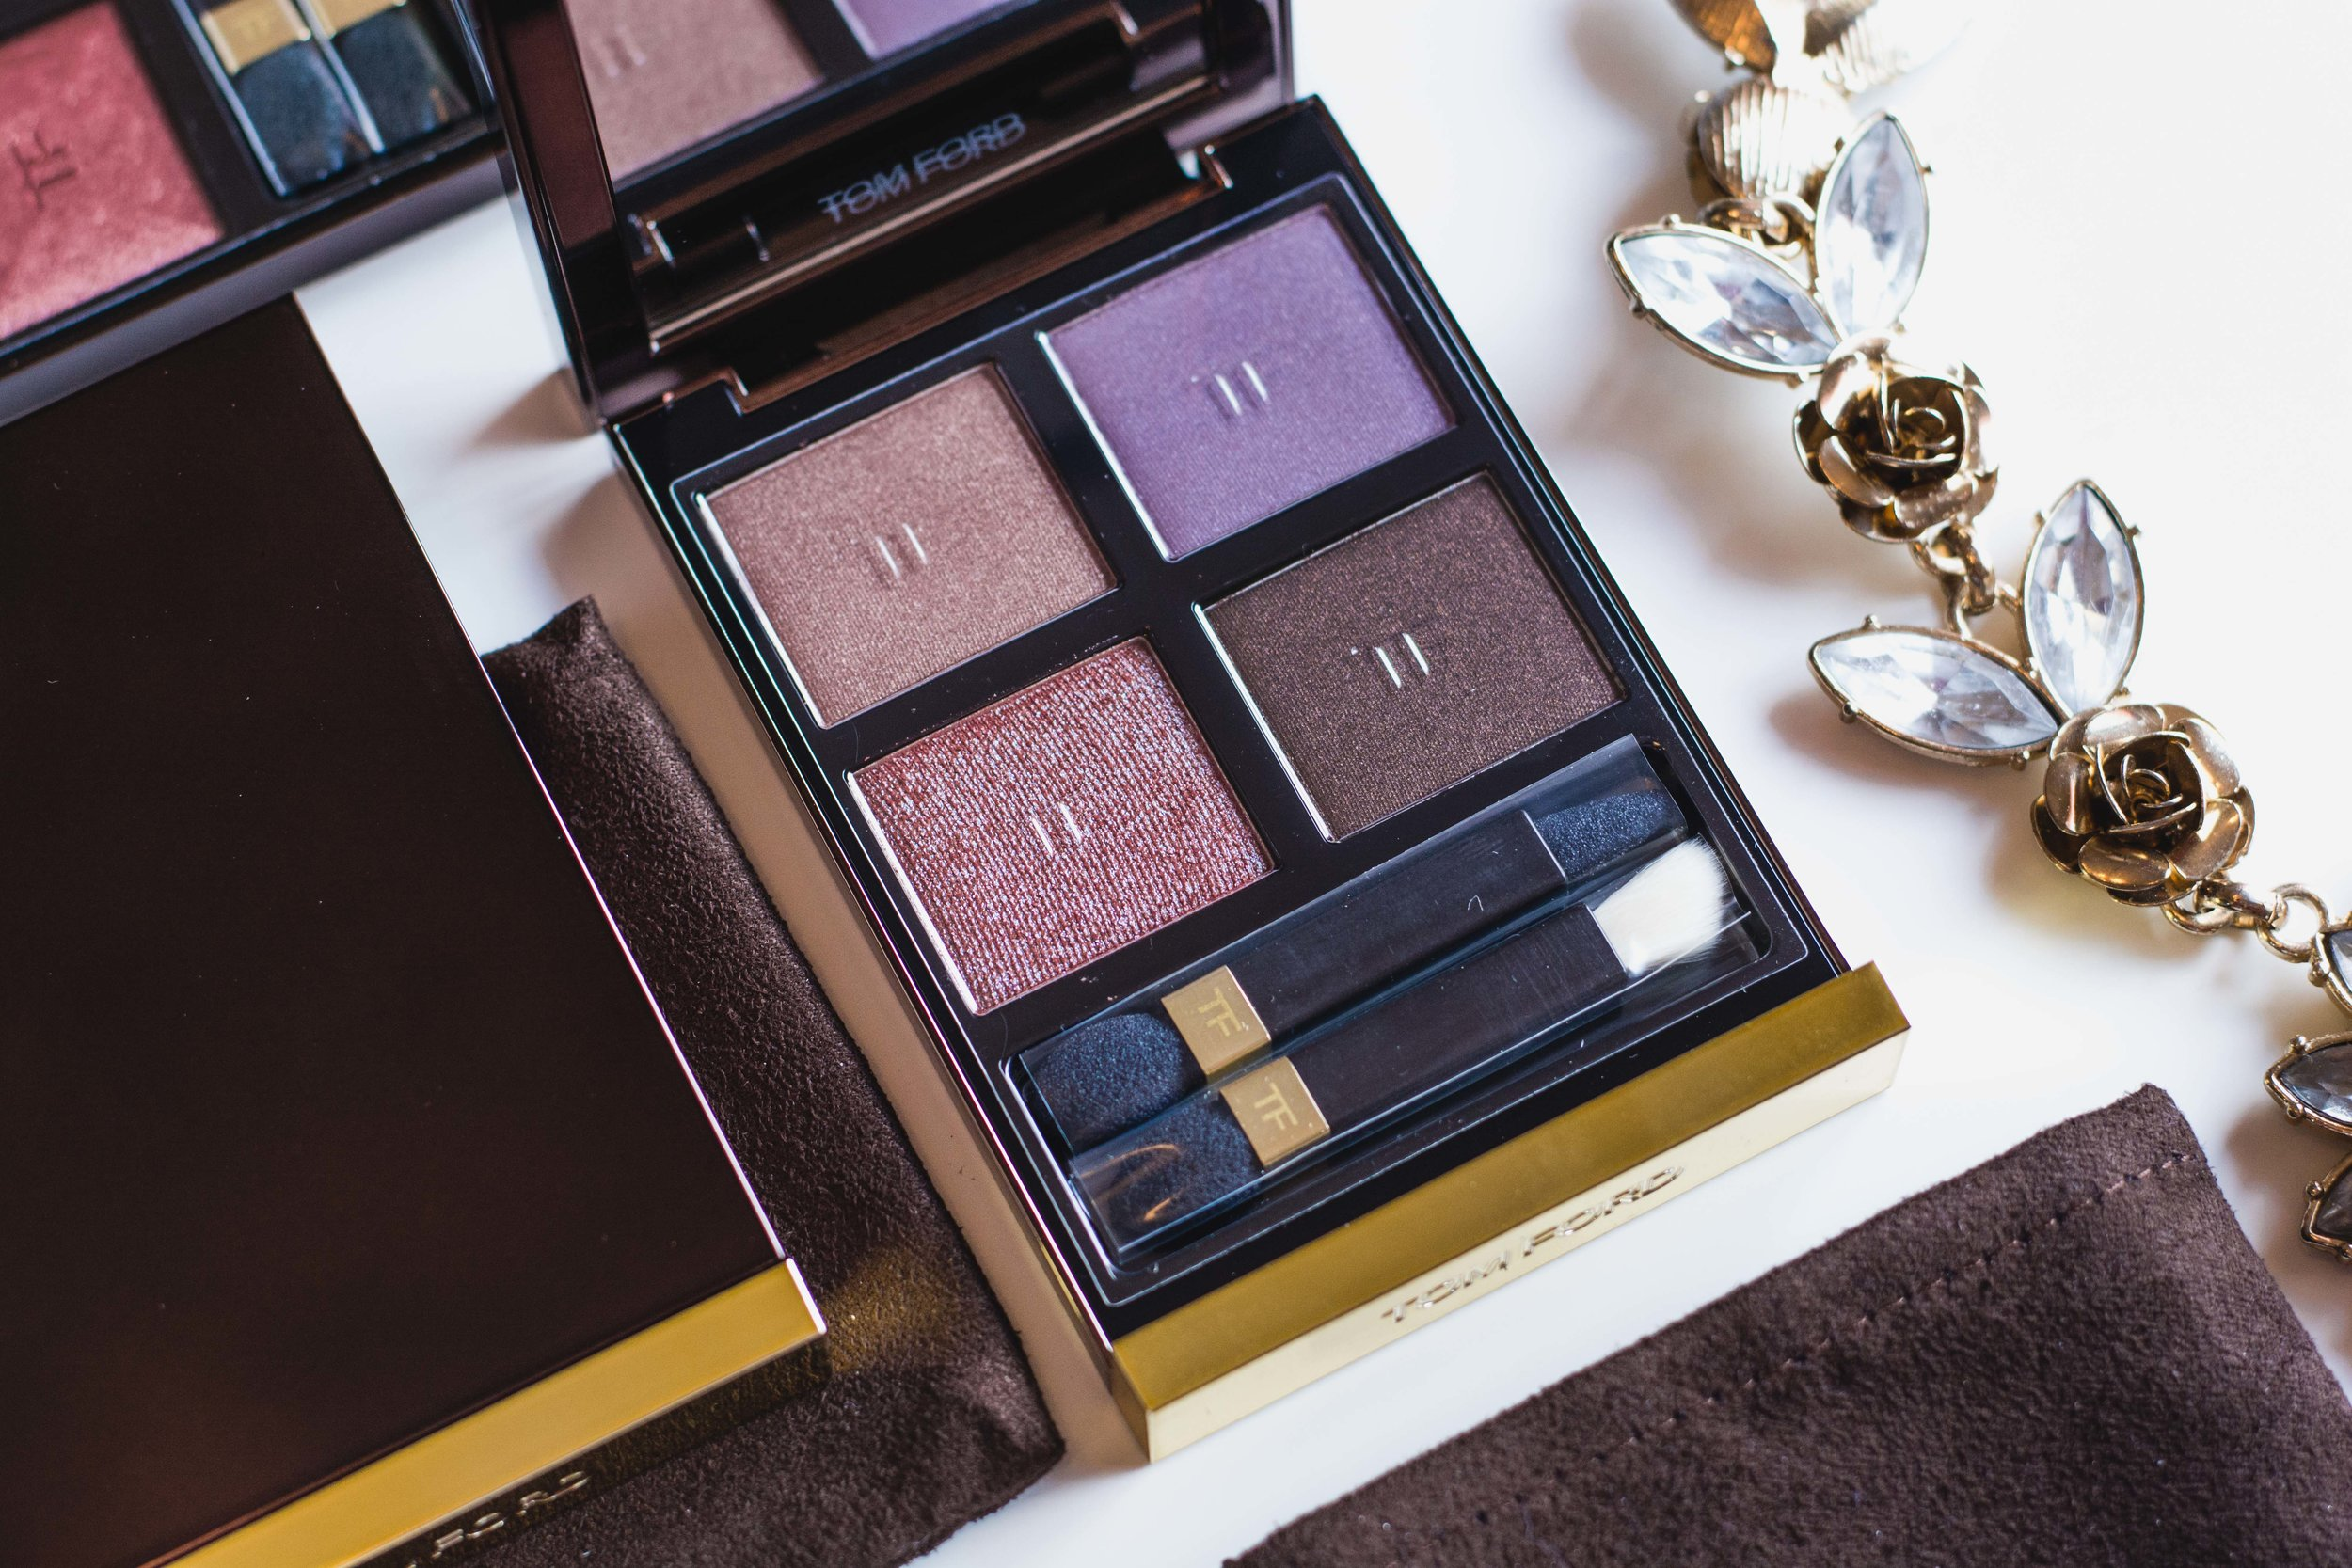 tom-ford-eye-quad_review_swatches-philippines_2019-3.jpg